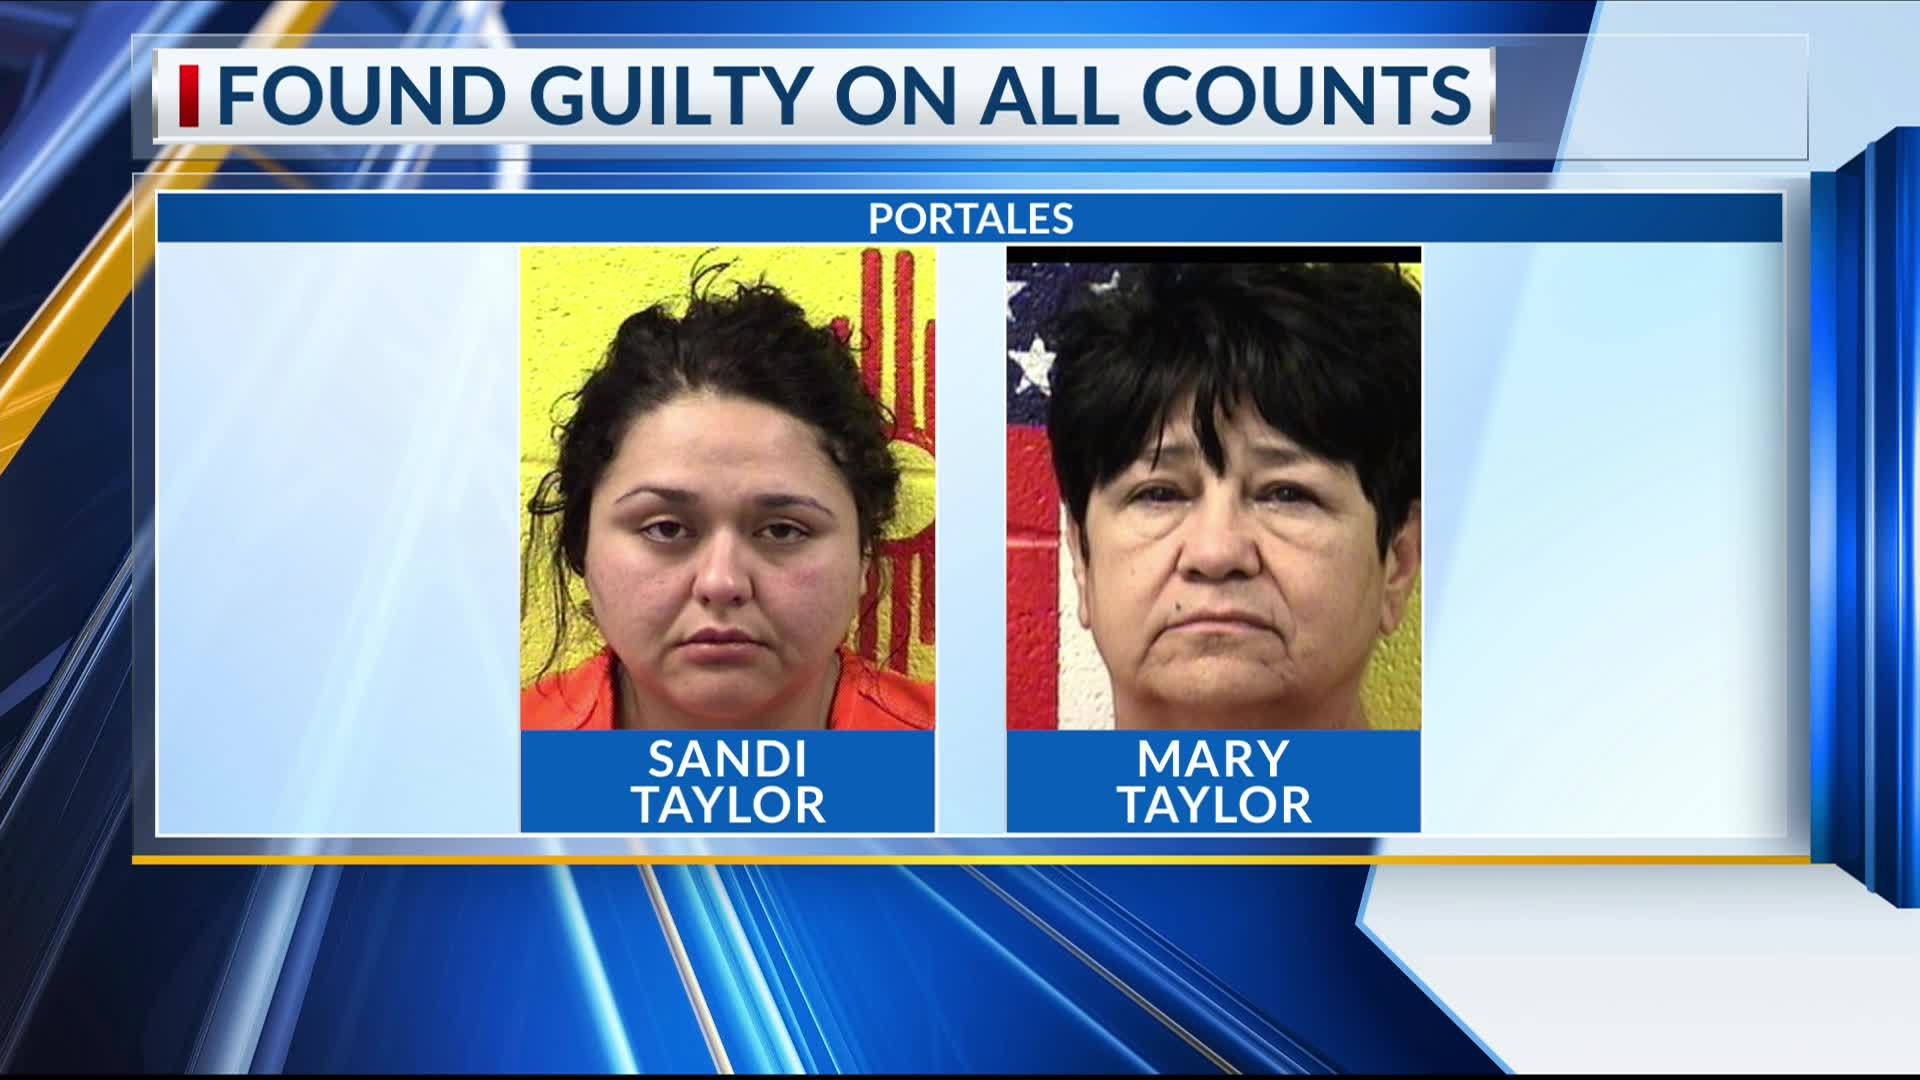 Portales_daycare_owners_found_guilty_in__6_20190205231659